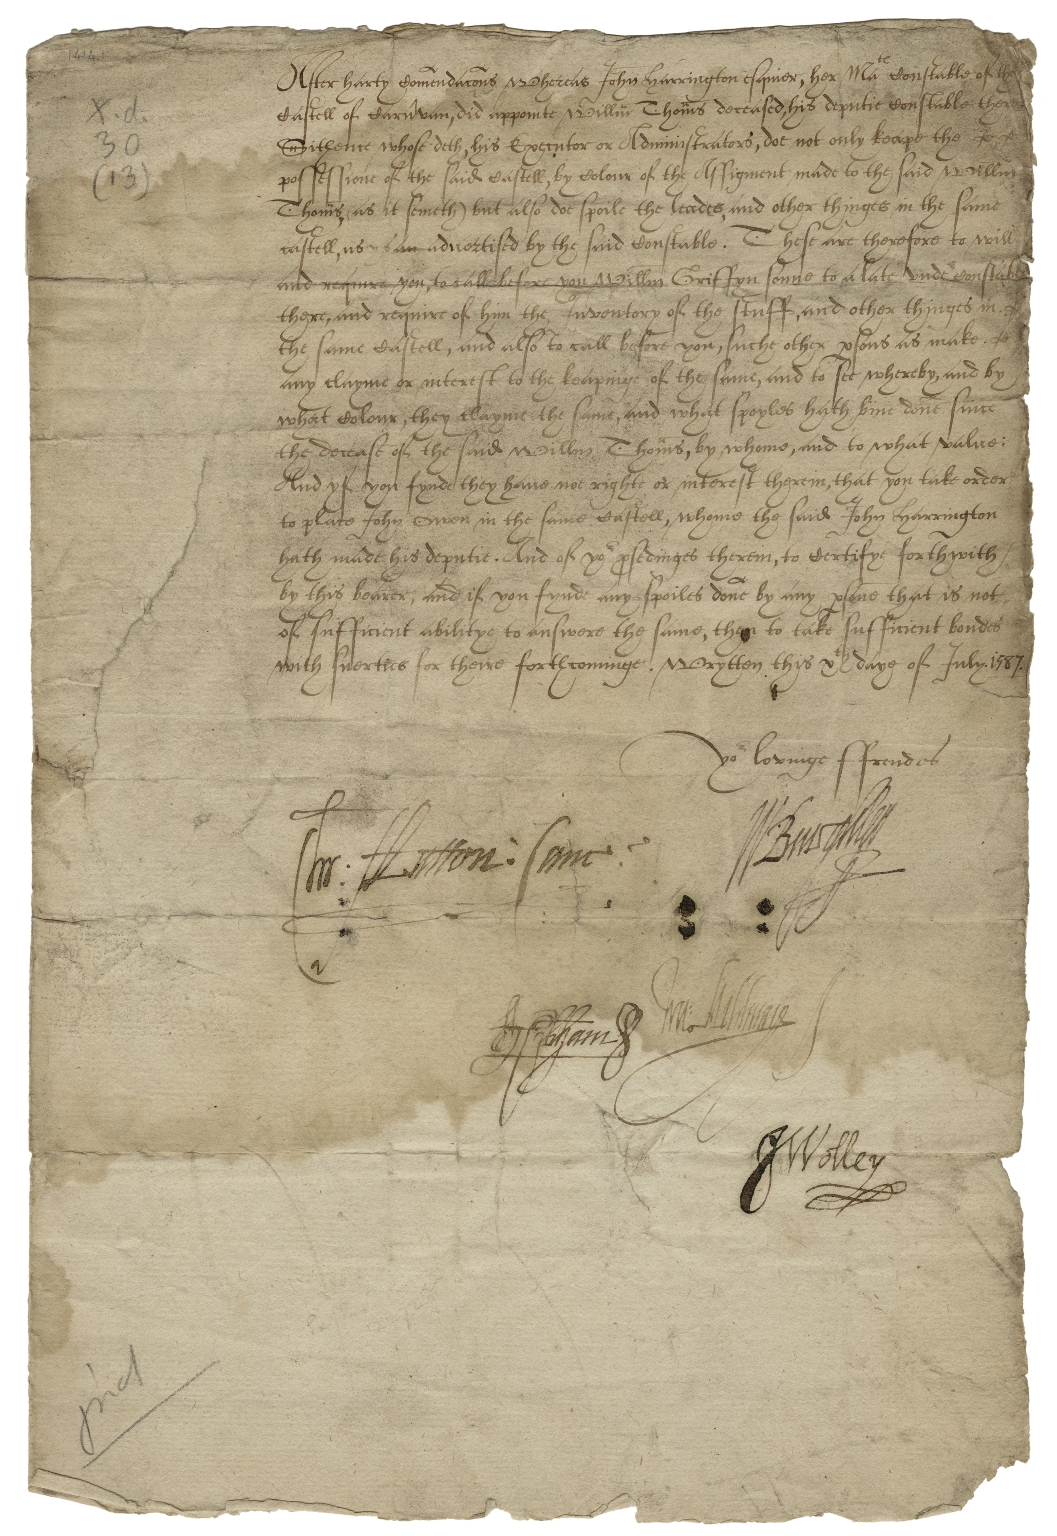 Letter signed from the Privy Council to John Leyton, Thomas Mosten, John Gwyn of Gweder?, and John Heymis?